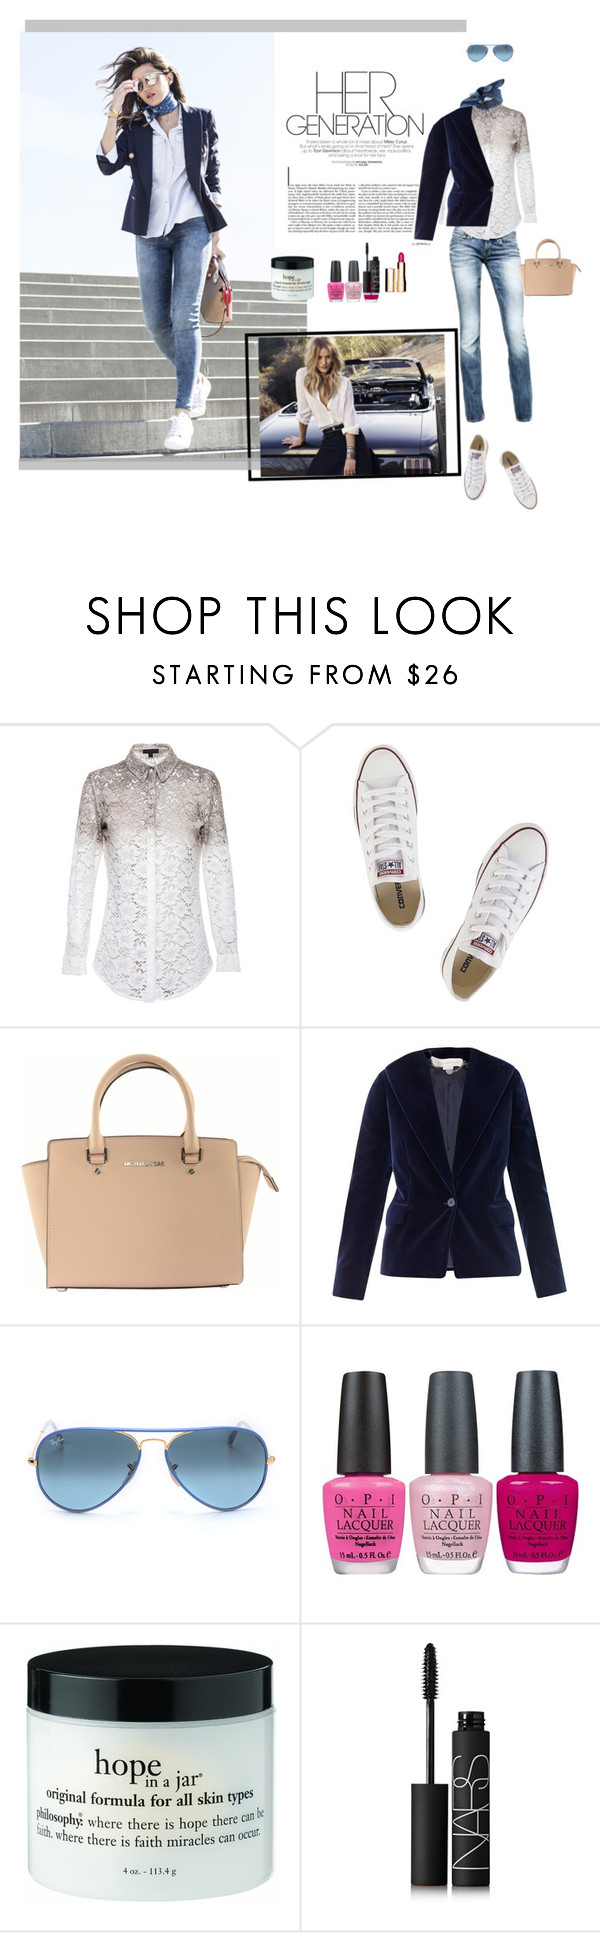 """""""Sweet Disposition"""" by desperer ❤ liked on Polyvore featuring G-Star, Burberry, Converse, ASOS, Michael Kors, STELLA McCARTNEY, Ray-Ban, OPI, NARS Cosmetics and Clarins"""